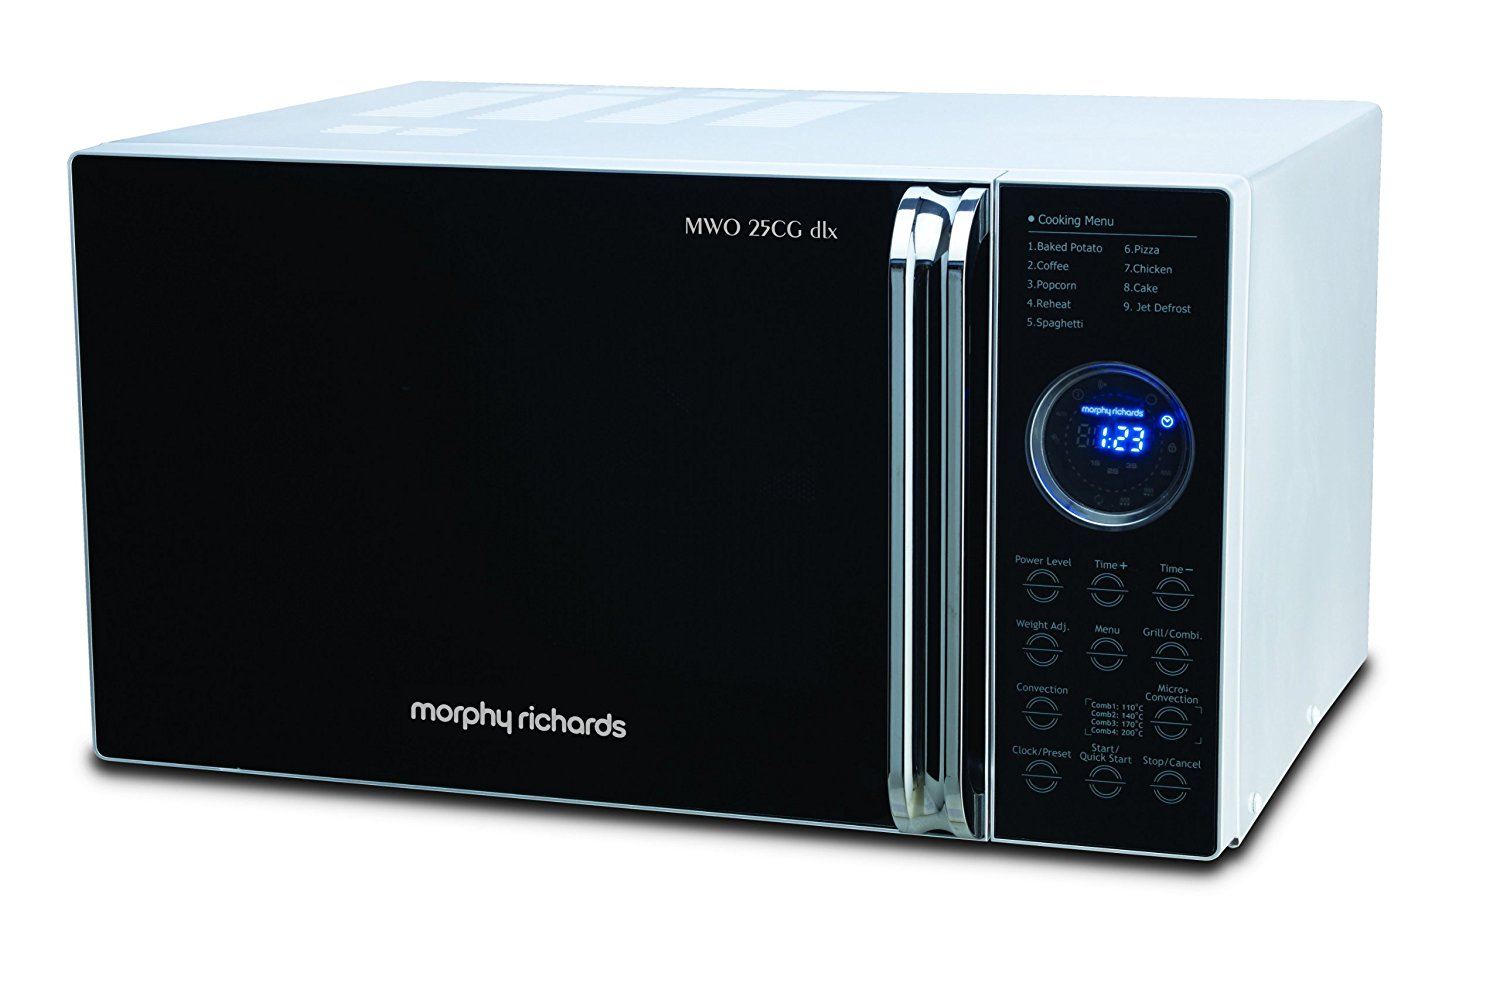 Morphy Richards Microwave Ovens